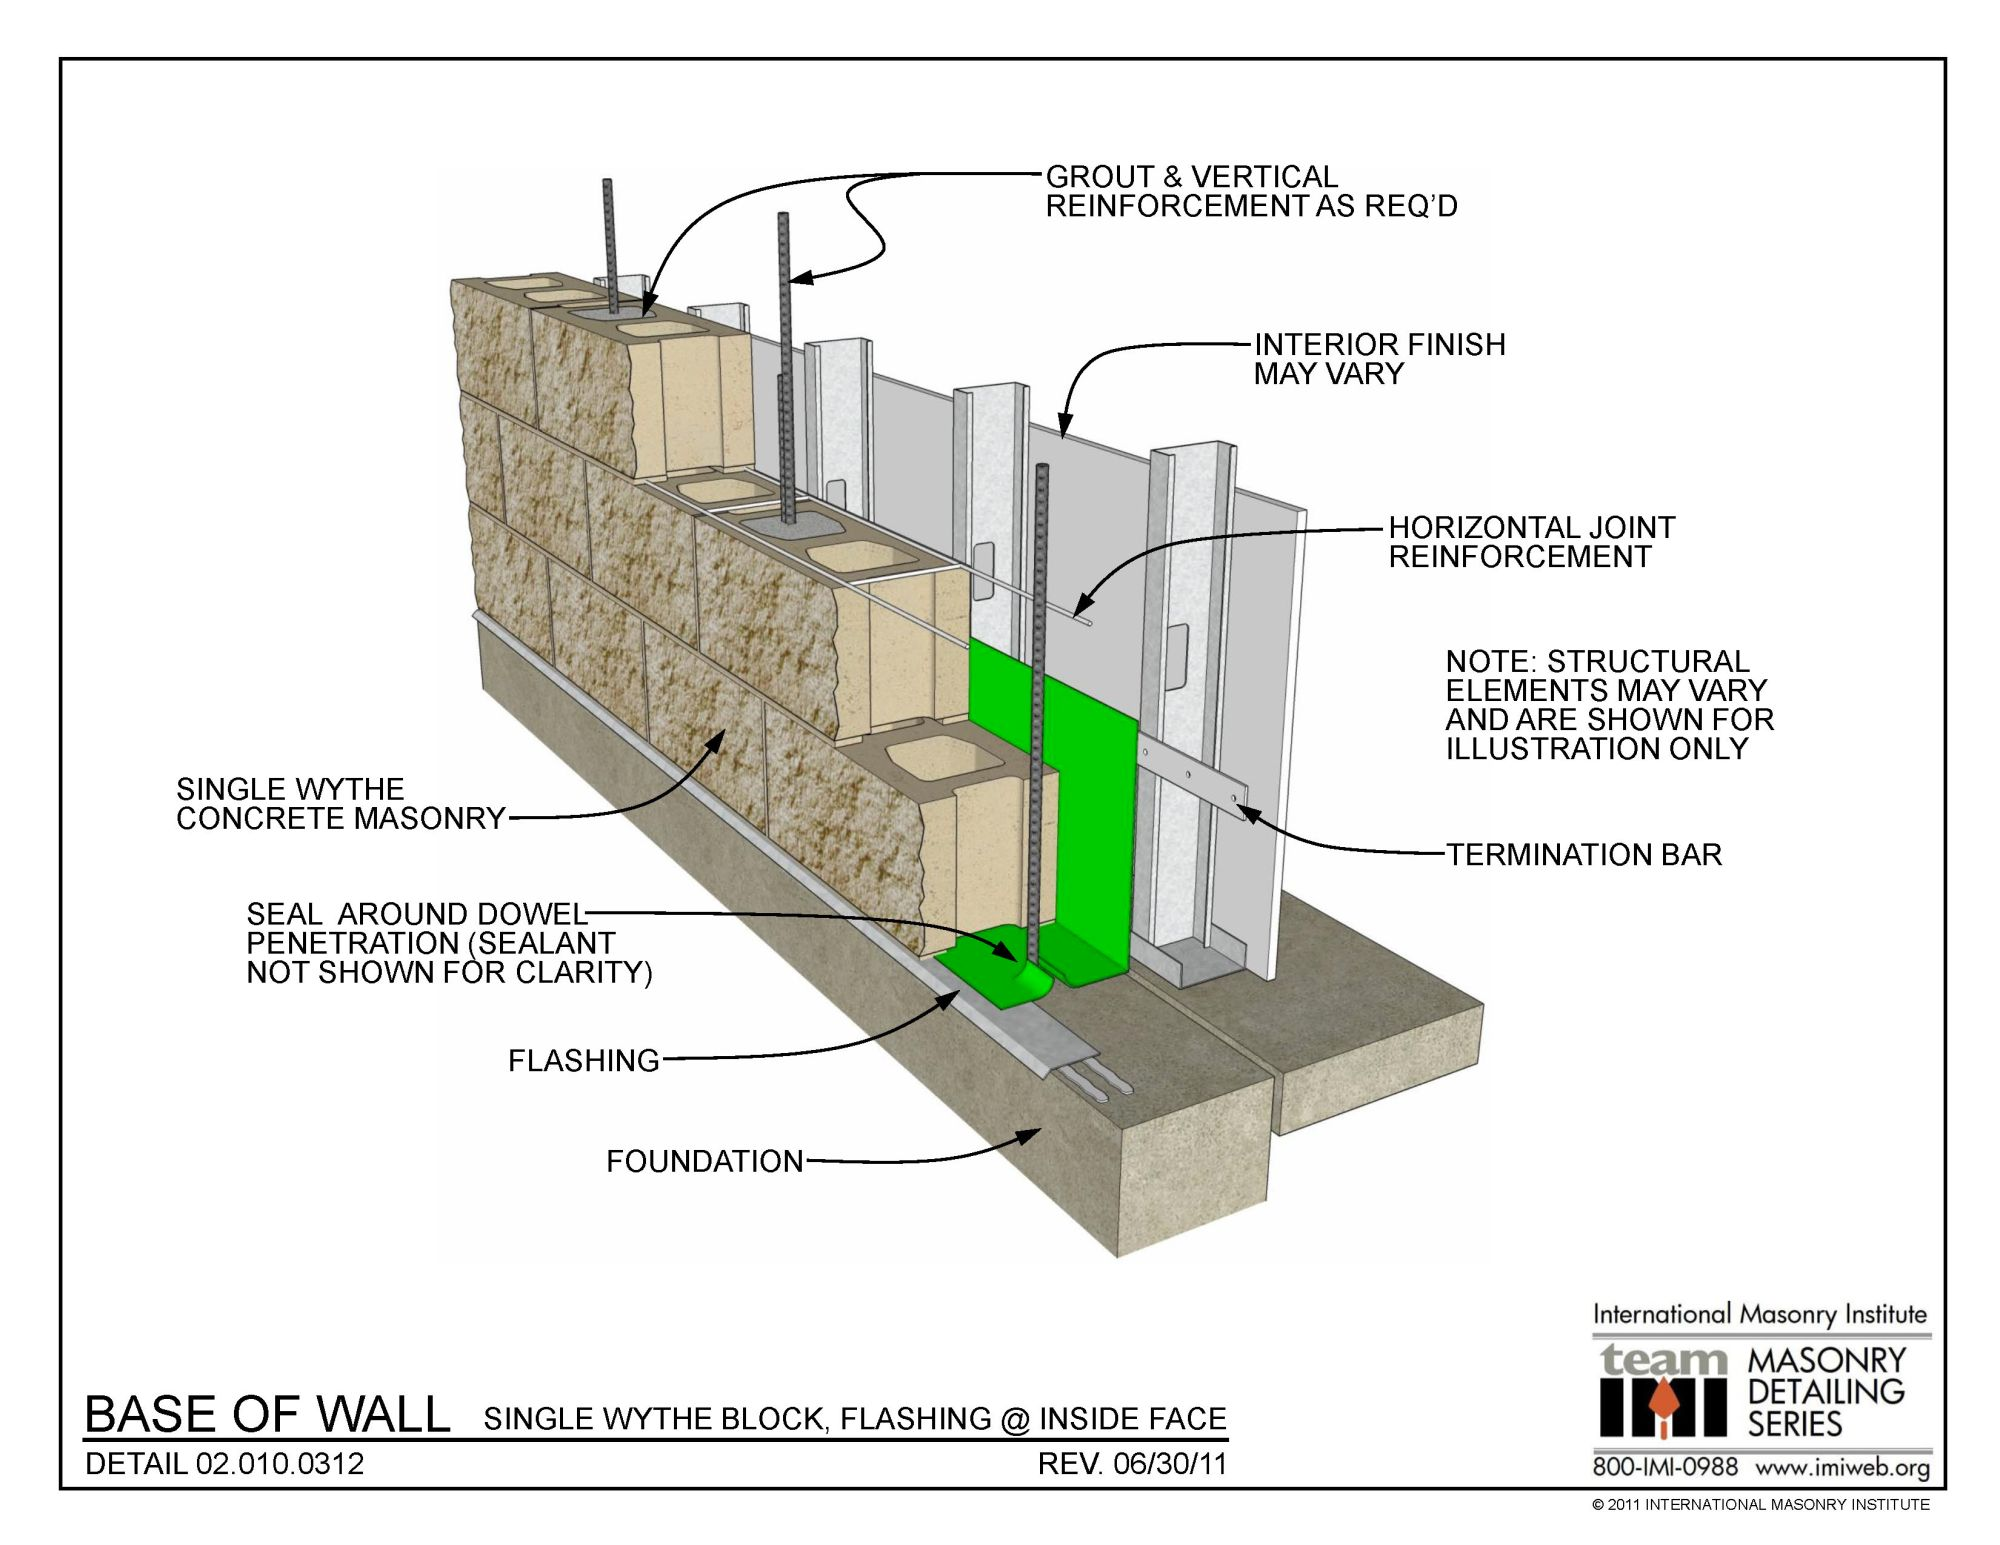 hight resolution of 02 010 0312 base of wall single wythe block flashing at inside face